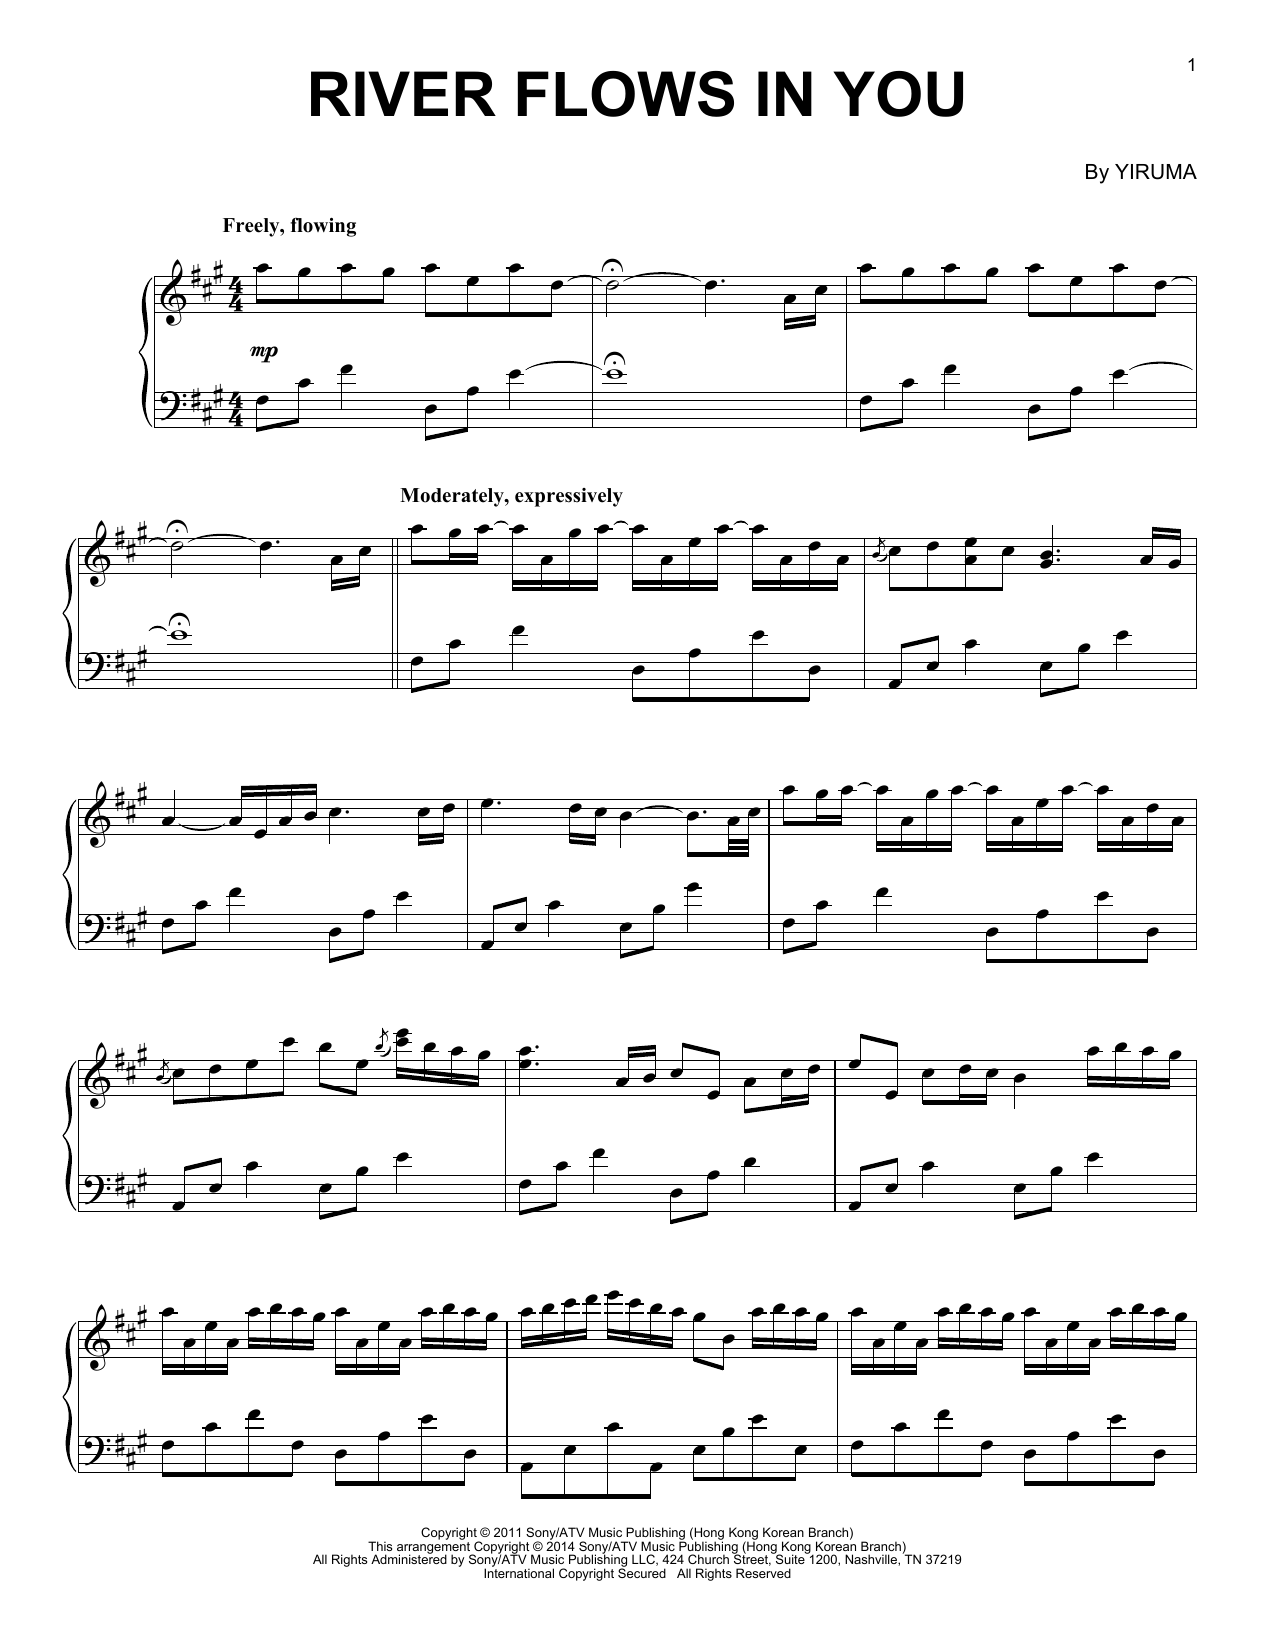 River Flows In You sheet music by Yiruma (Piano u2013 84177)